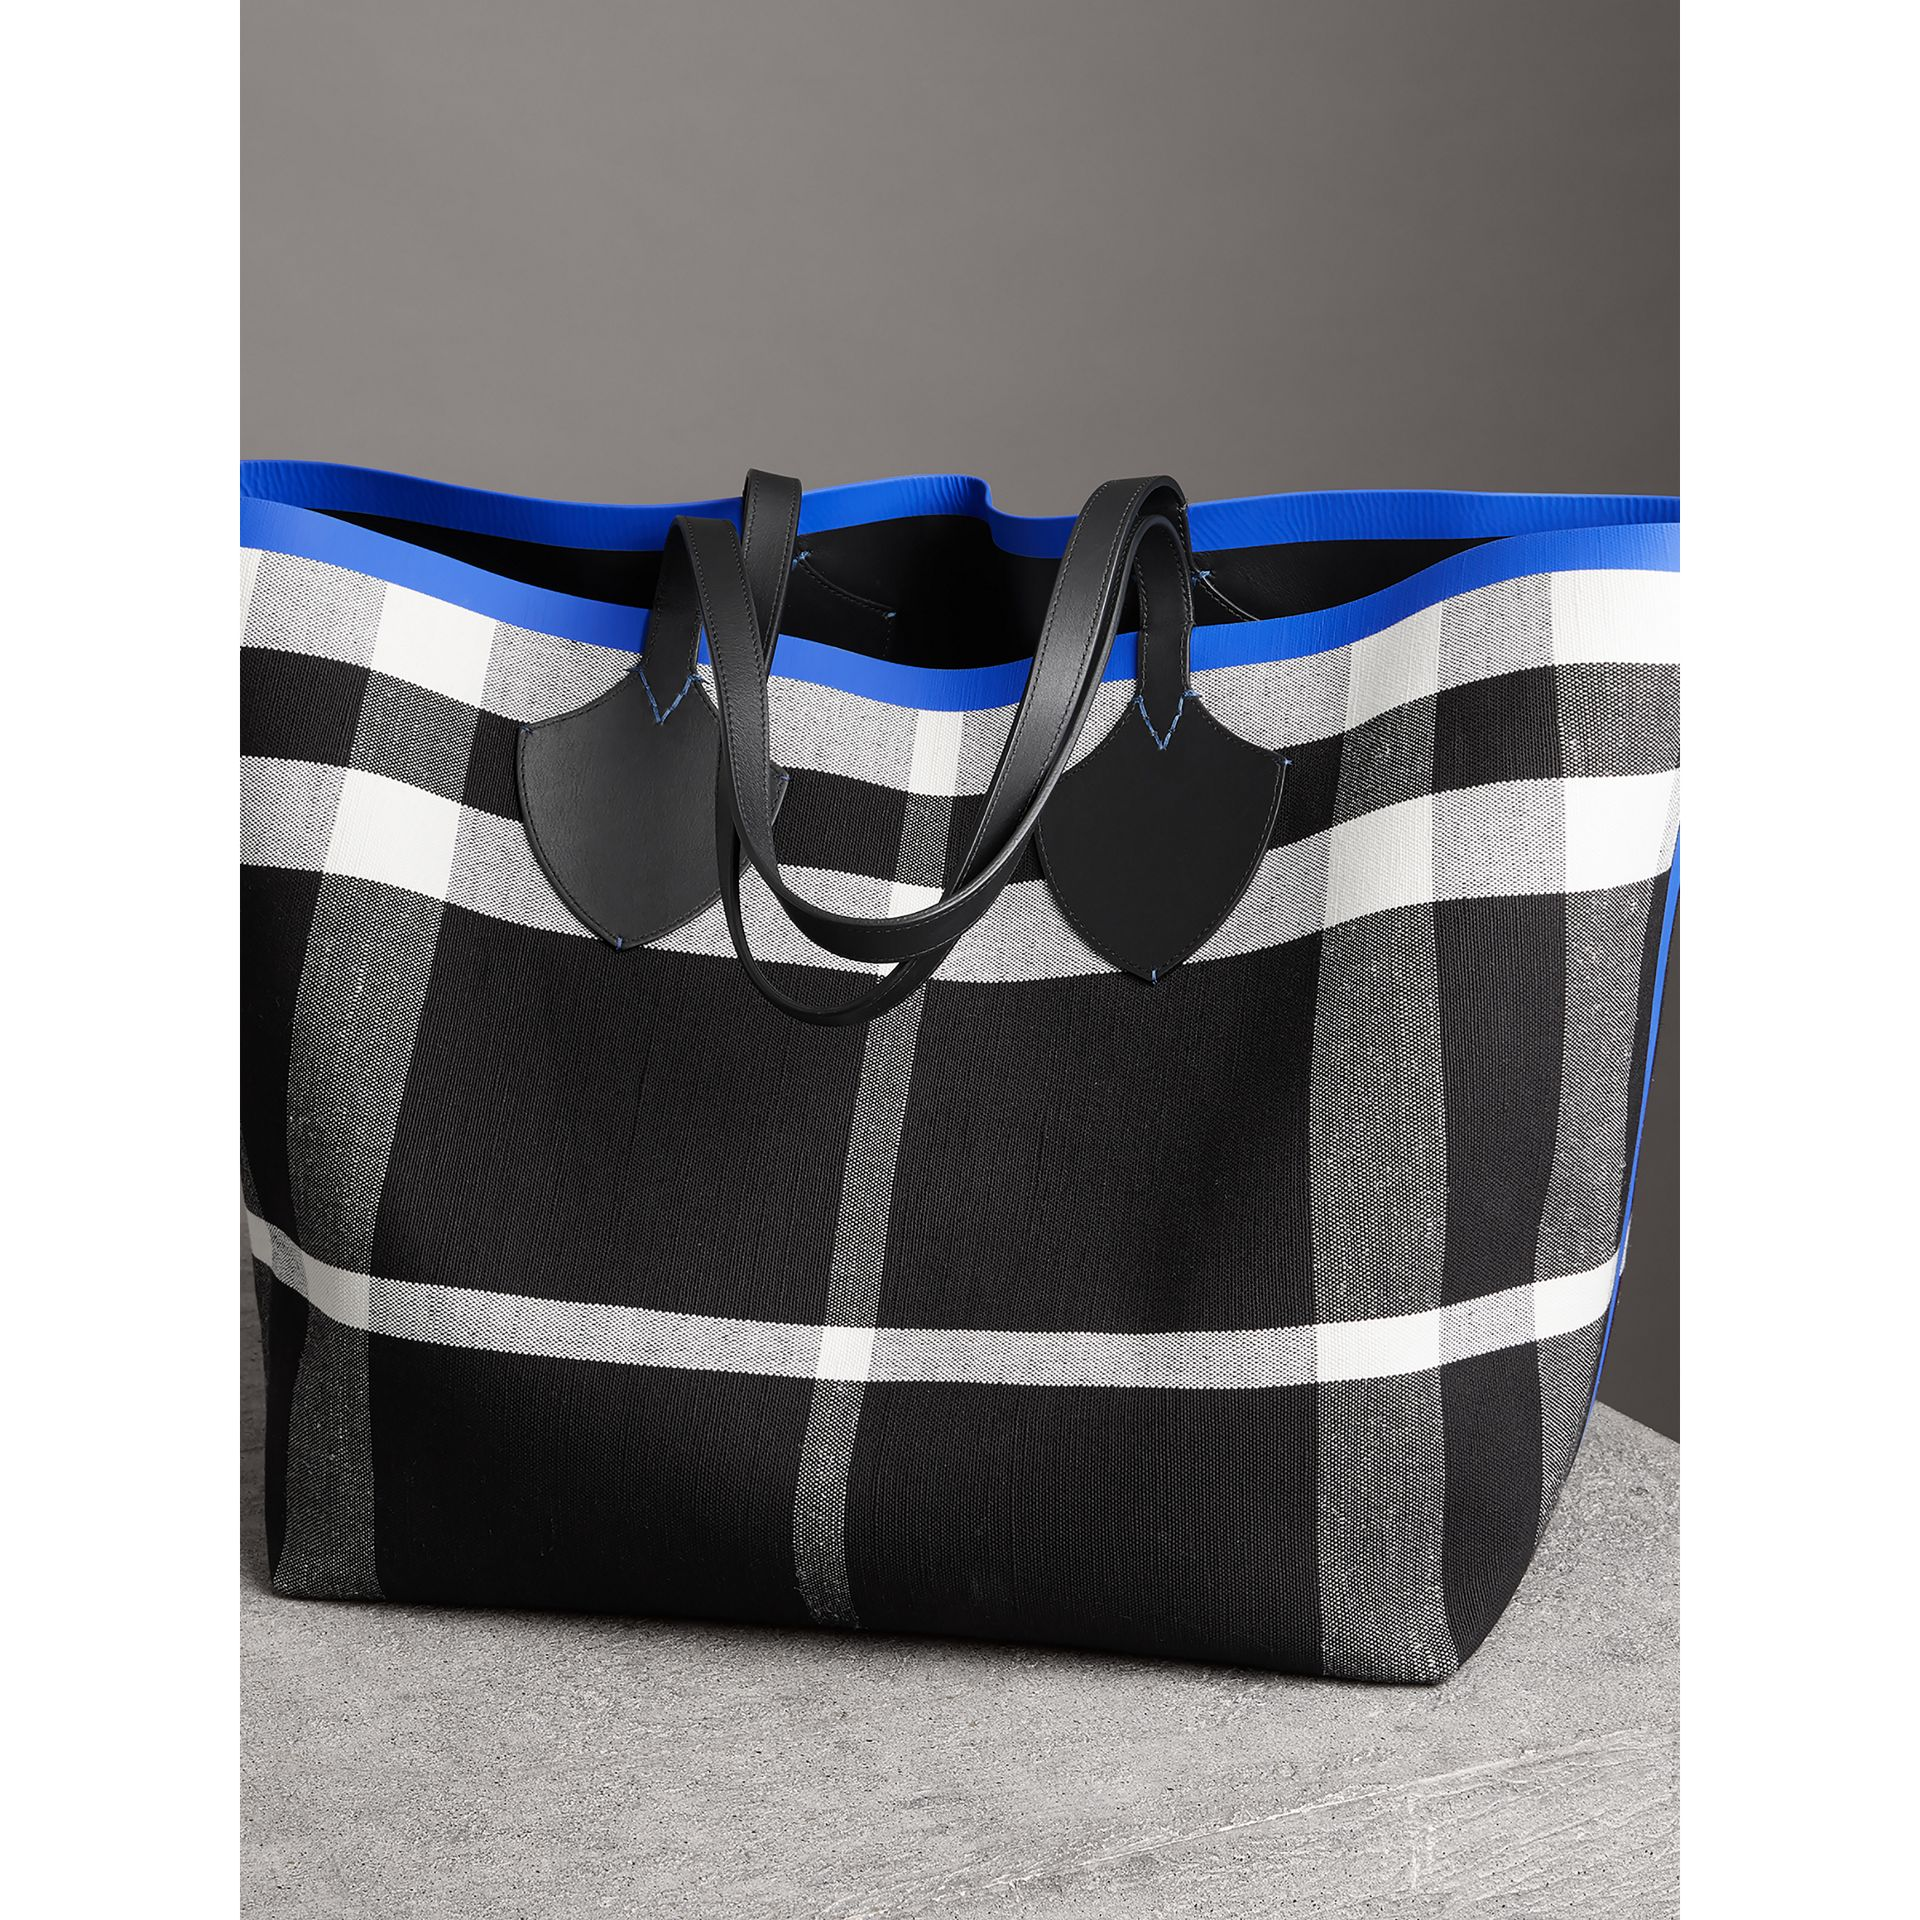 Borsa tote The Giant reversibile in cotone con motivo Canvas check e pelle (Mirtillo/nero) | Burberry - immagine della galleria 2